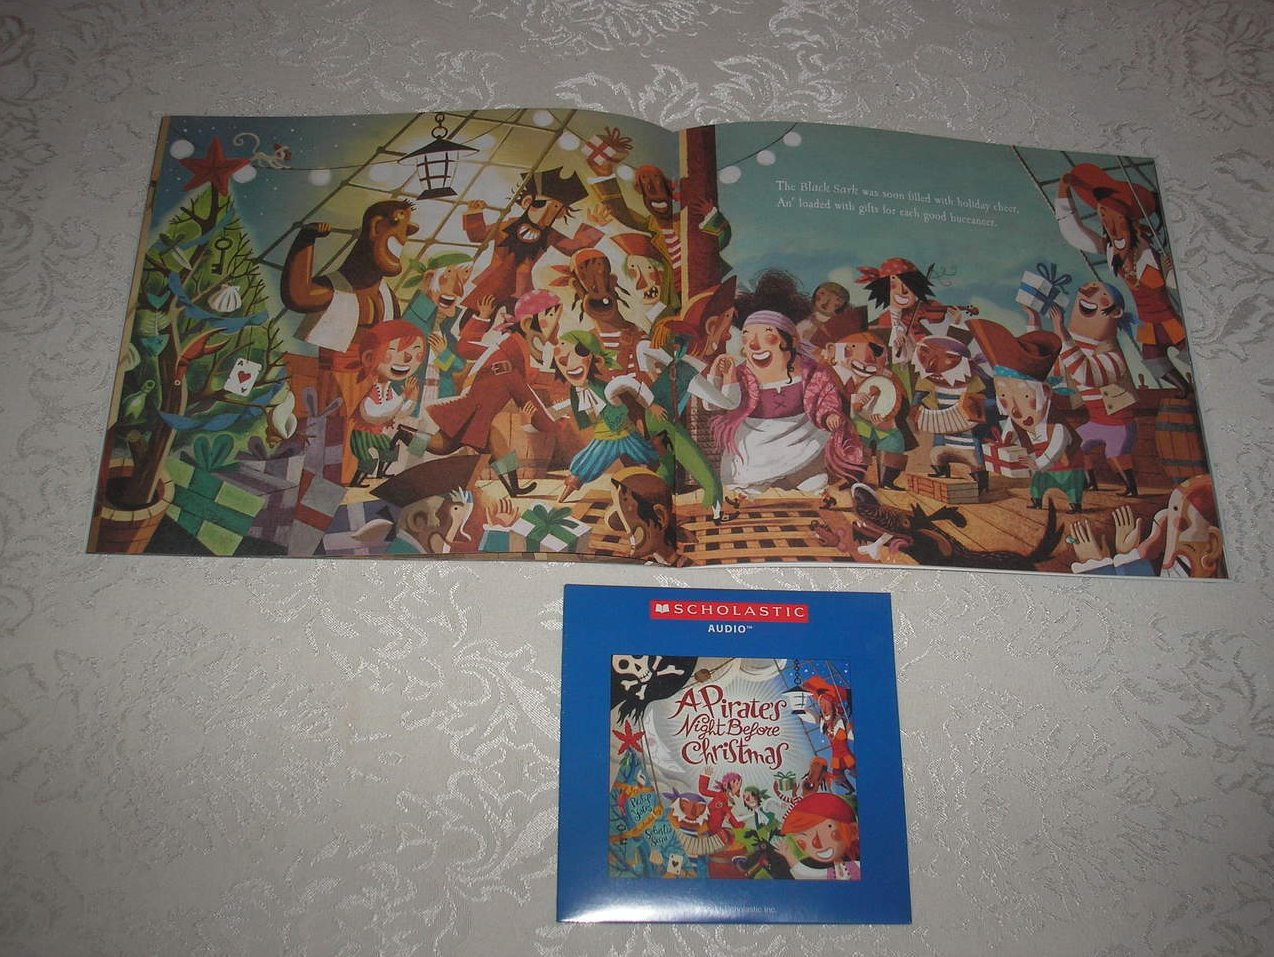 Image 3 of A Pirate's Night Before Christmas brand new sc and sealed Audio CD Philip Yates